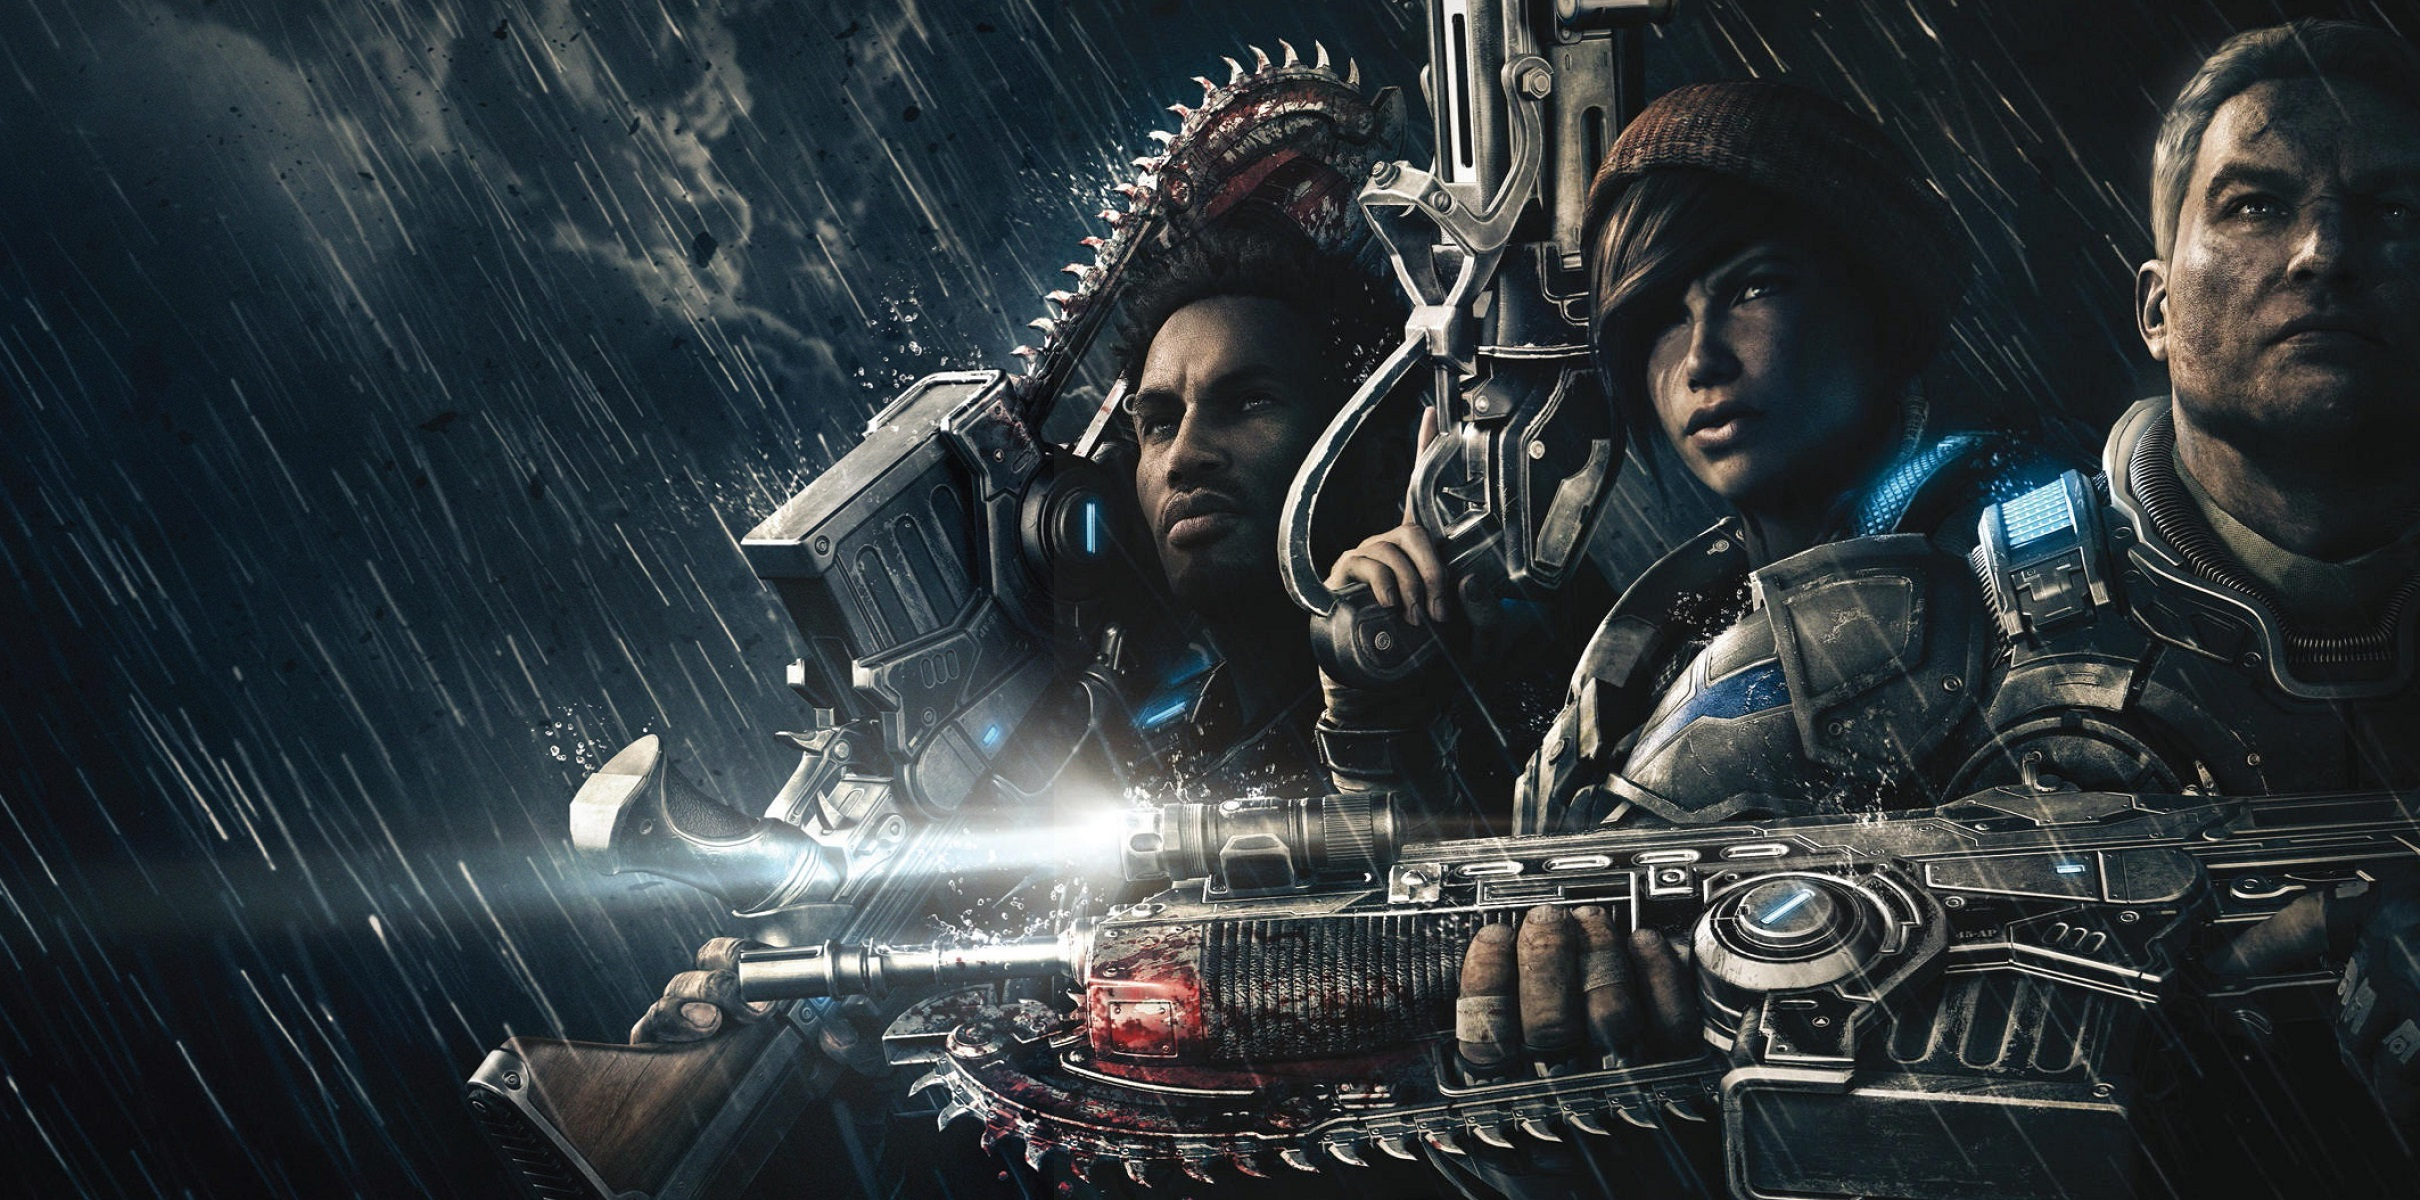 40 Gears Of War 4 Hd Wallpapers Background Images Wallpaper Abyss